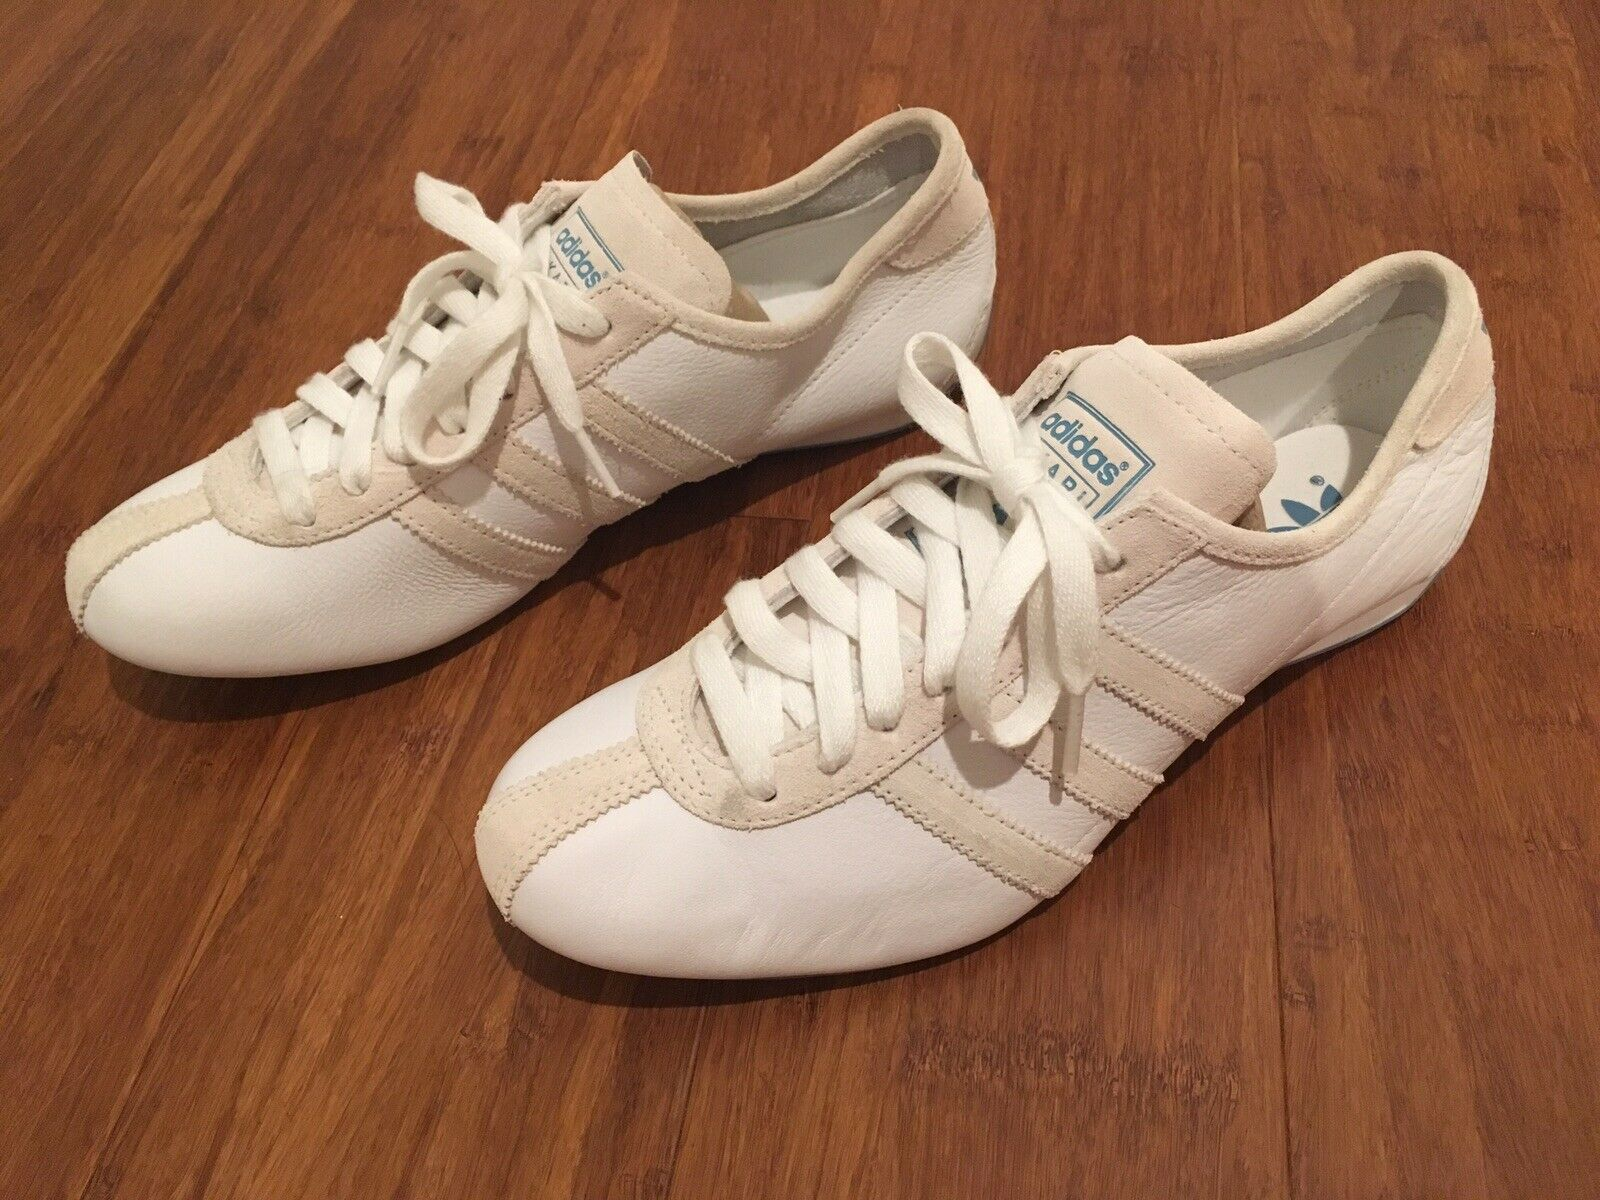 Adidas shoes white US women's 8.5 - never used